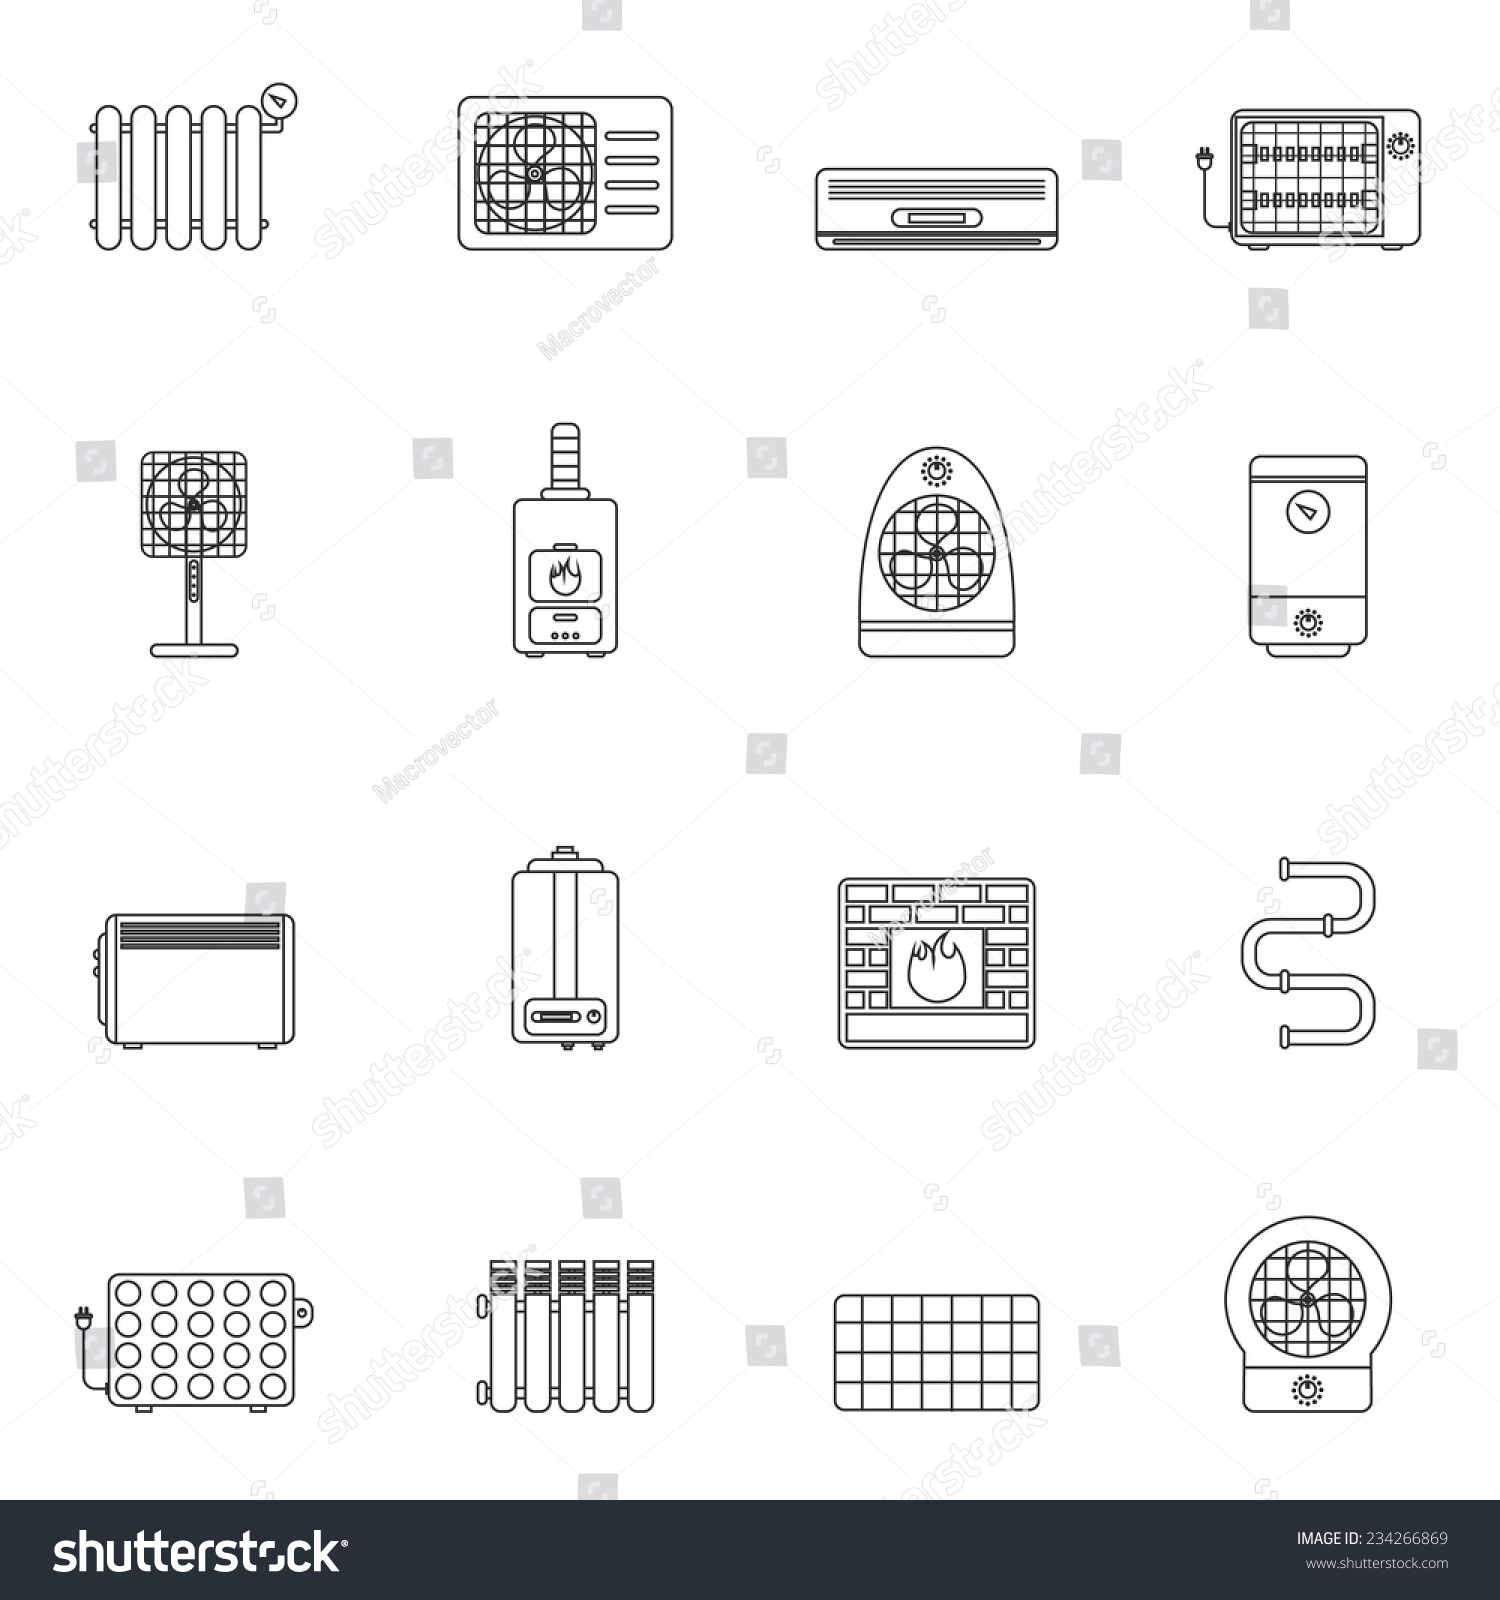 Heating Cooling System Air Conditioning Equipment Stock Vector